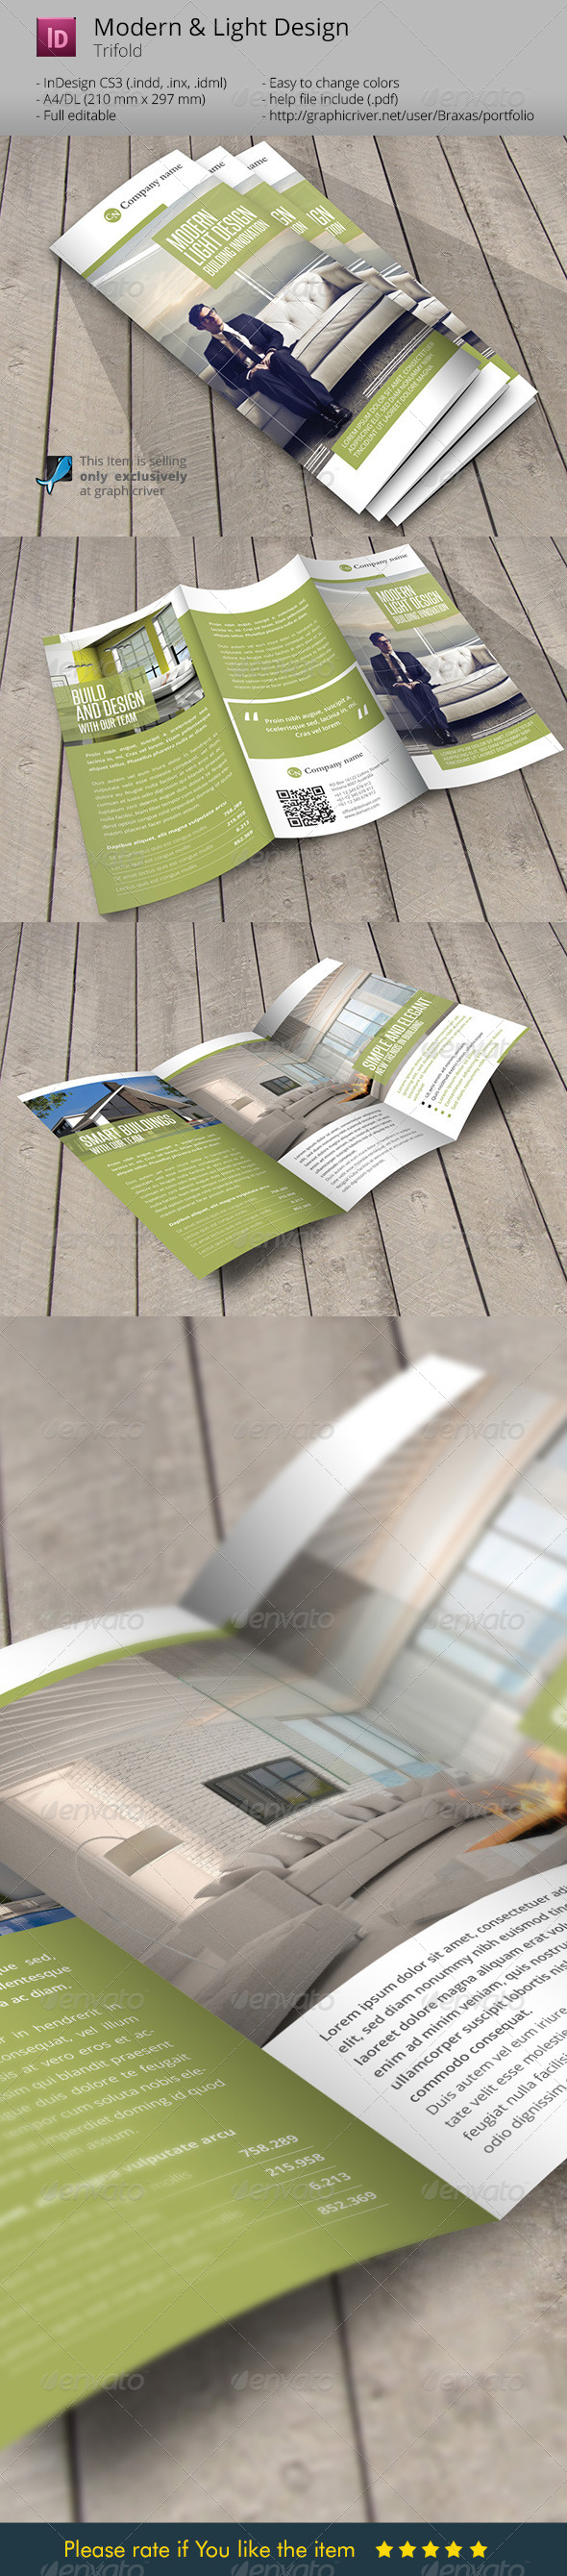 GraphicRiver Modern and Light Design Indesign Template Brochure 6241124